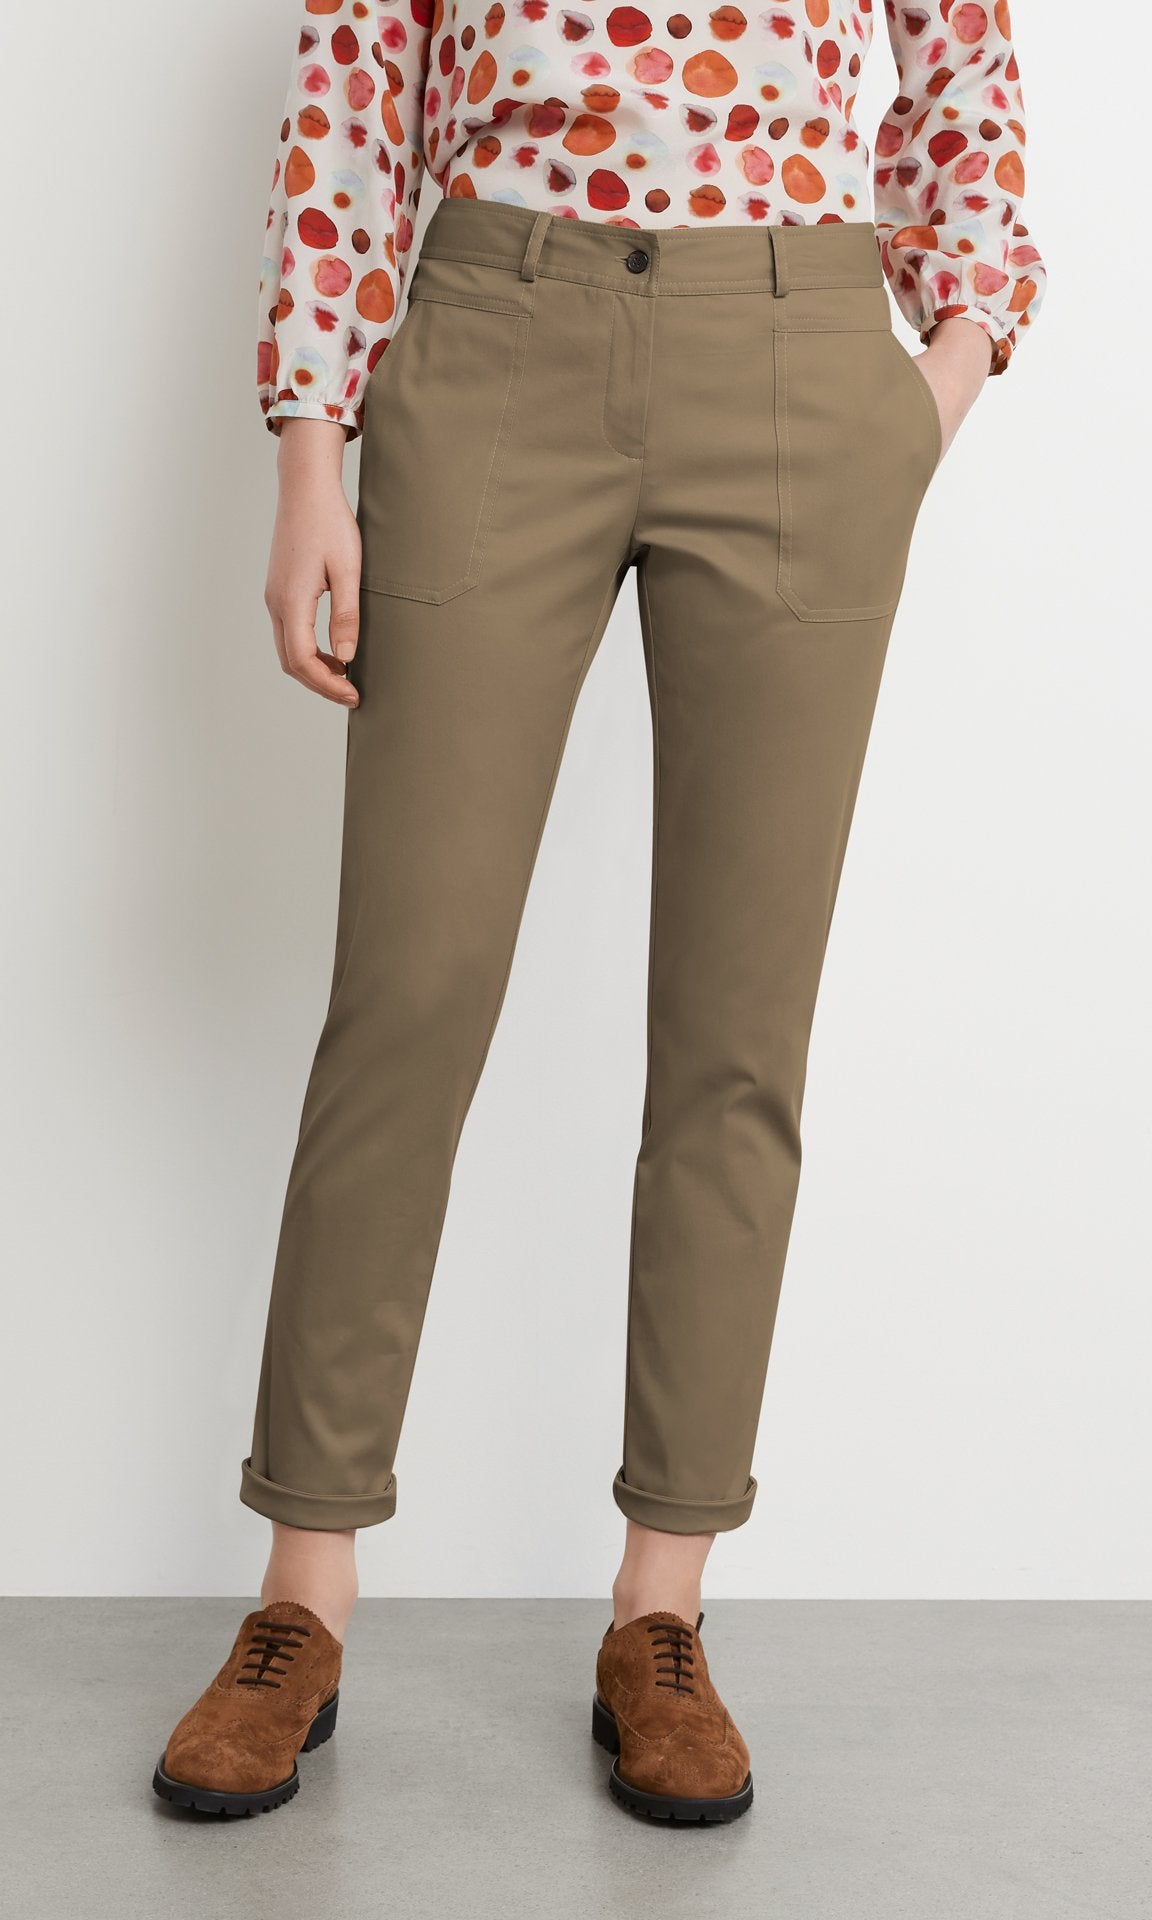 Saxon Chino Pant - COMING SOON